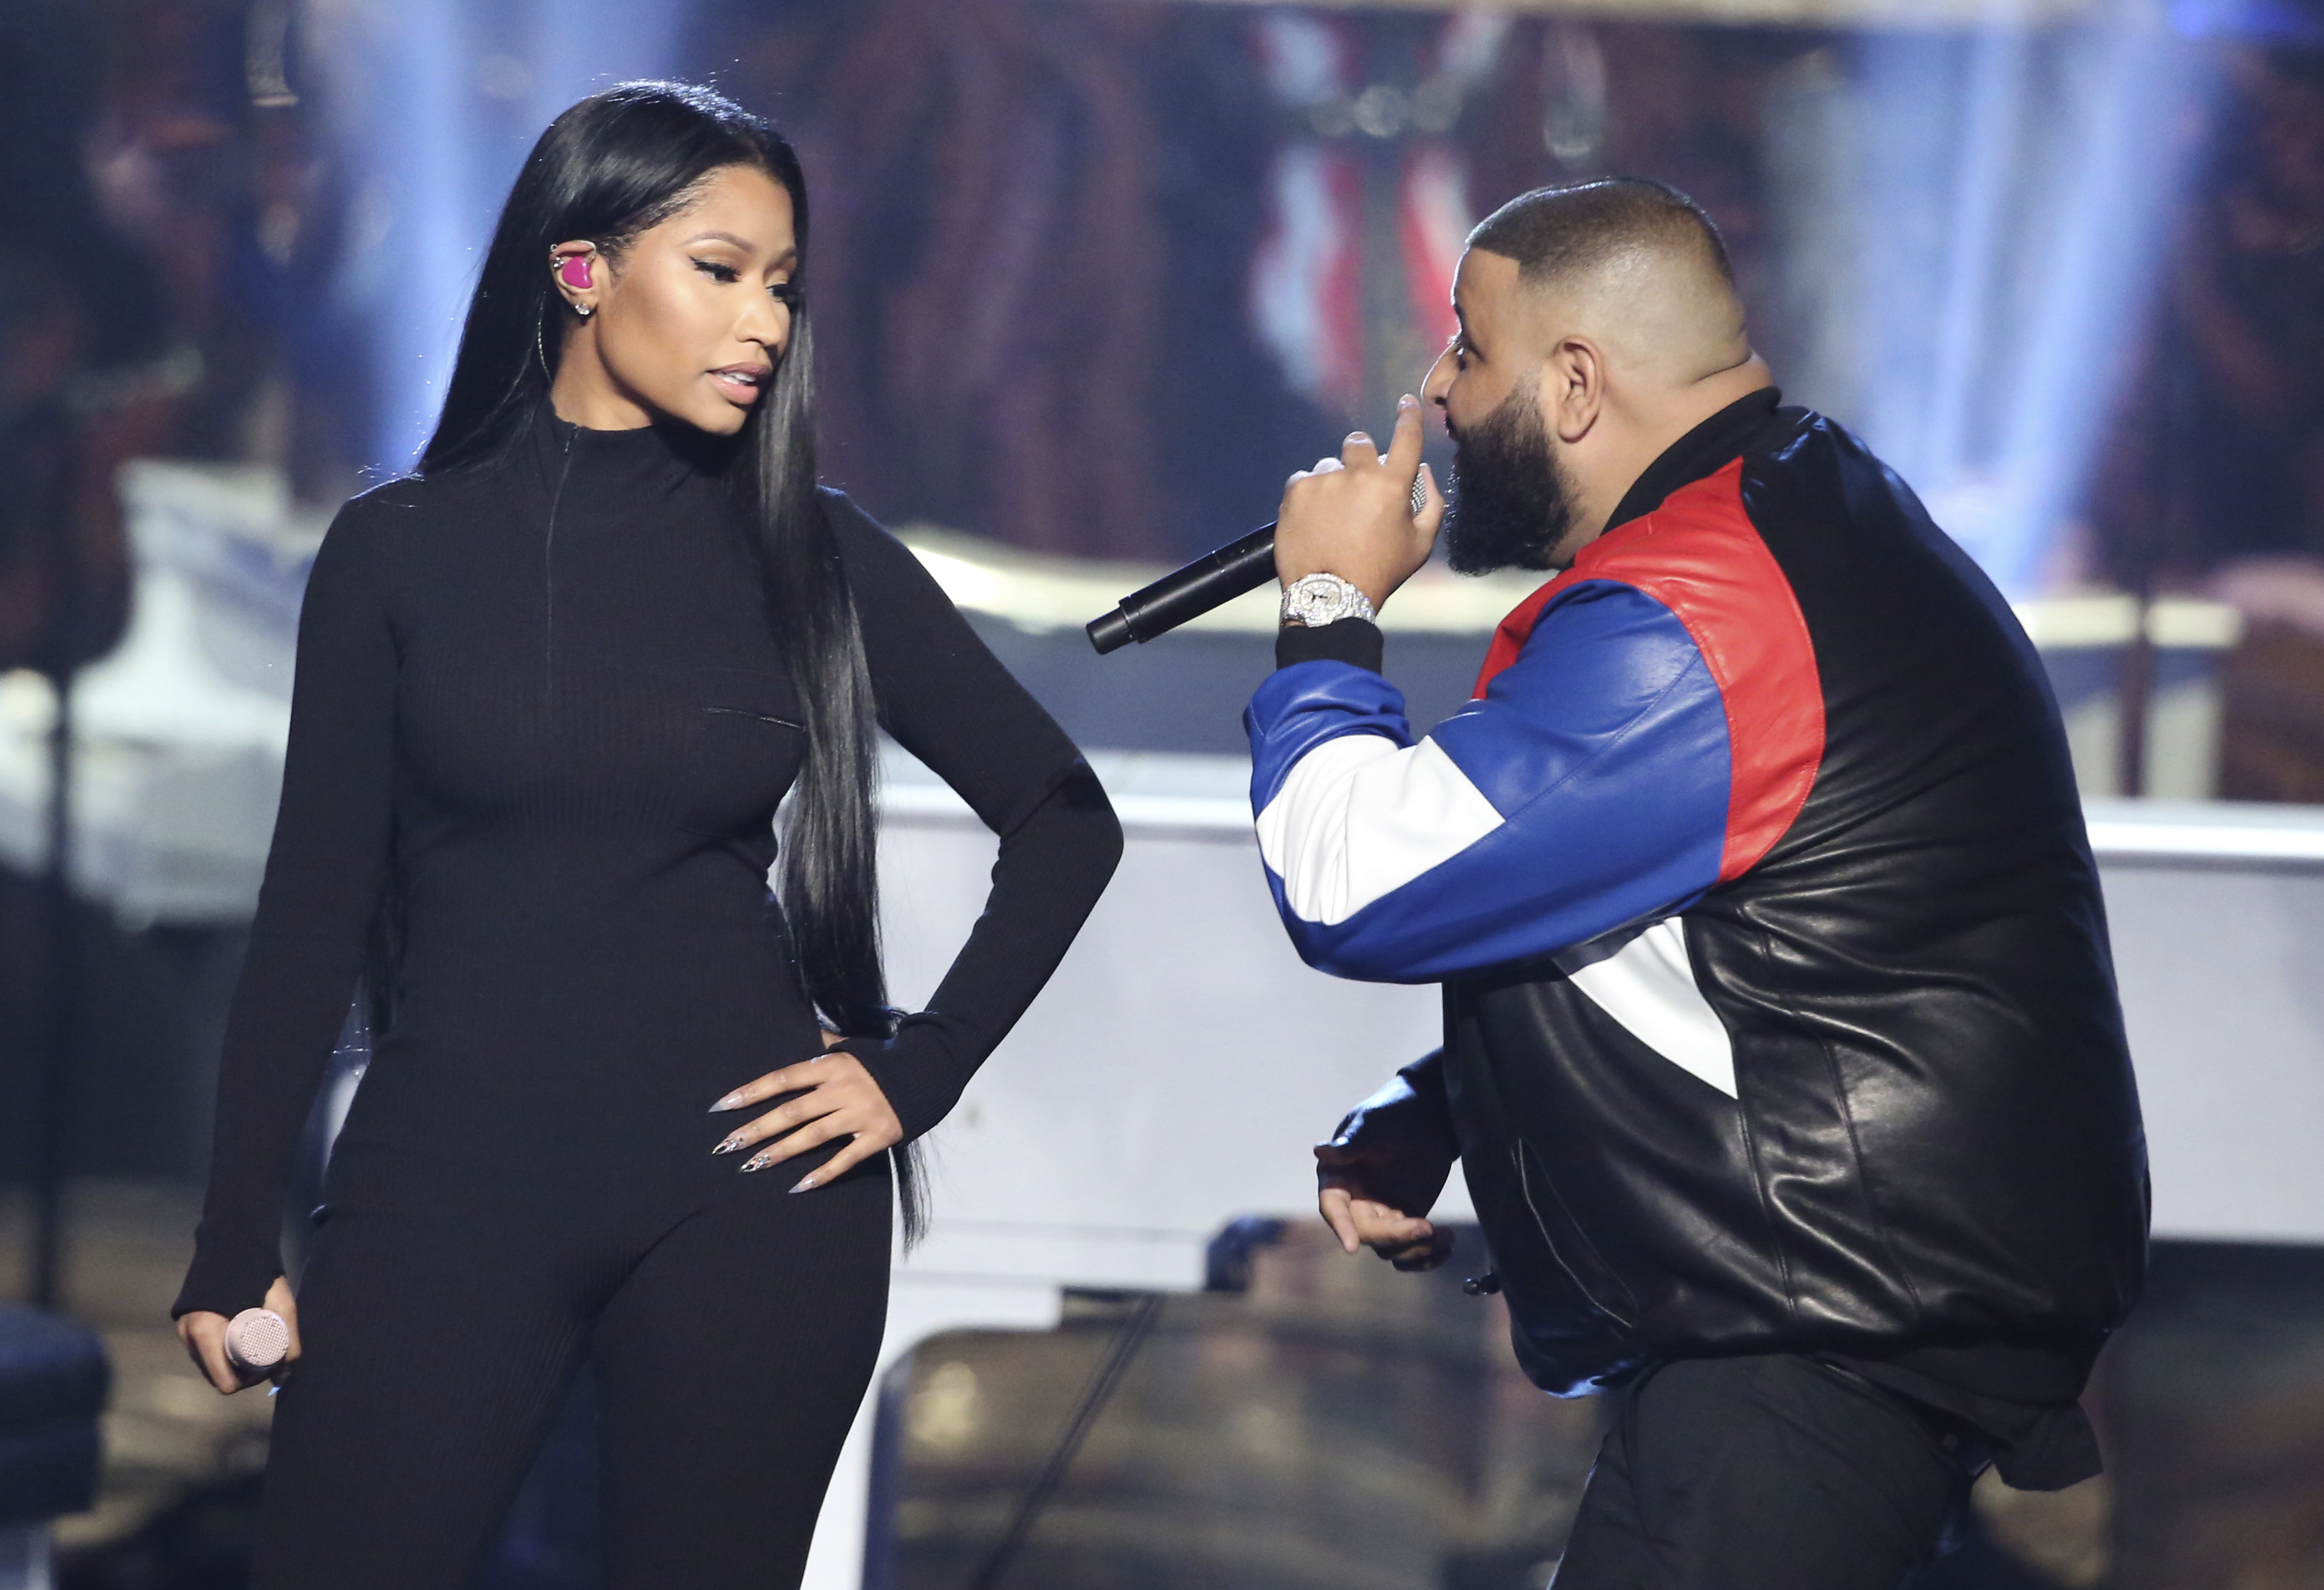 "KK17 Los Angeles - Nicki Ninaj (v¾avo) DJ Khaled vystupujú s piesòou Do you Mind na odovzdávaní Amerických hudobných cien 2016 v Los Angeles 20. novembra 2016. FOTO TASR/AP Nicki Minaj, left, and DJ Khaled perform ""Do You Mind"" at the American Music Awards at the Microsoft Theater on Sunday, Nov. 20, 2016, in Los Angeles. (Photo by Matt Sayles/Invision/AP)"